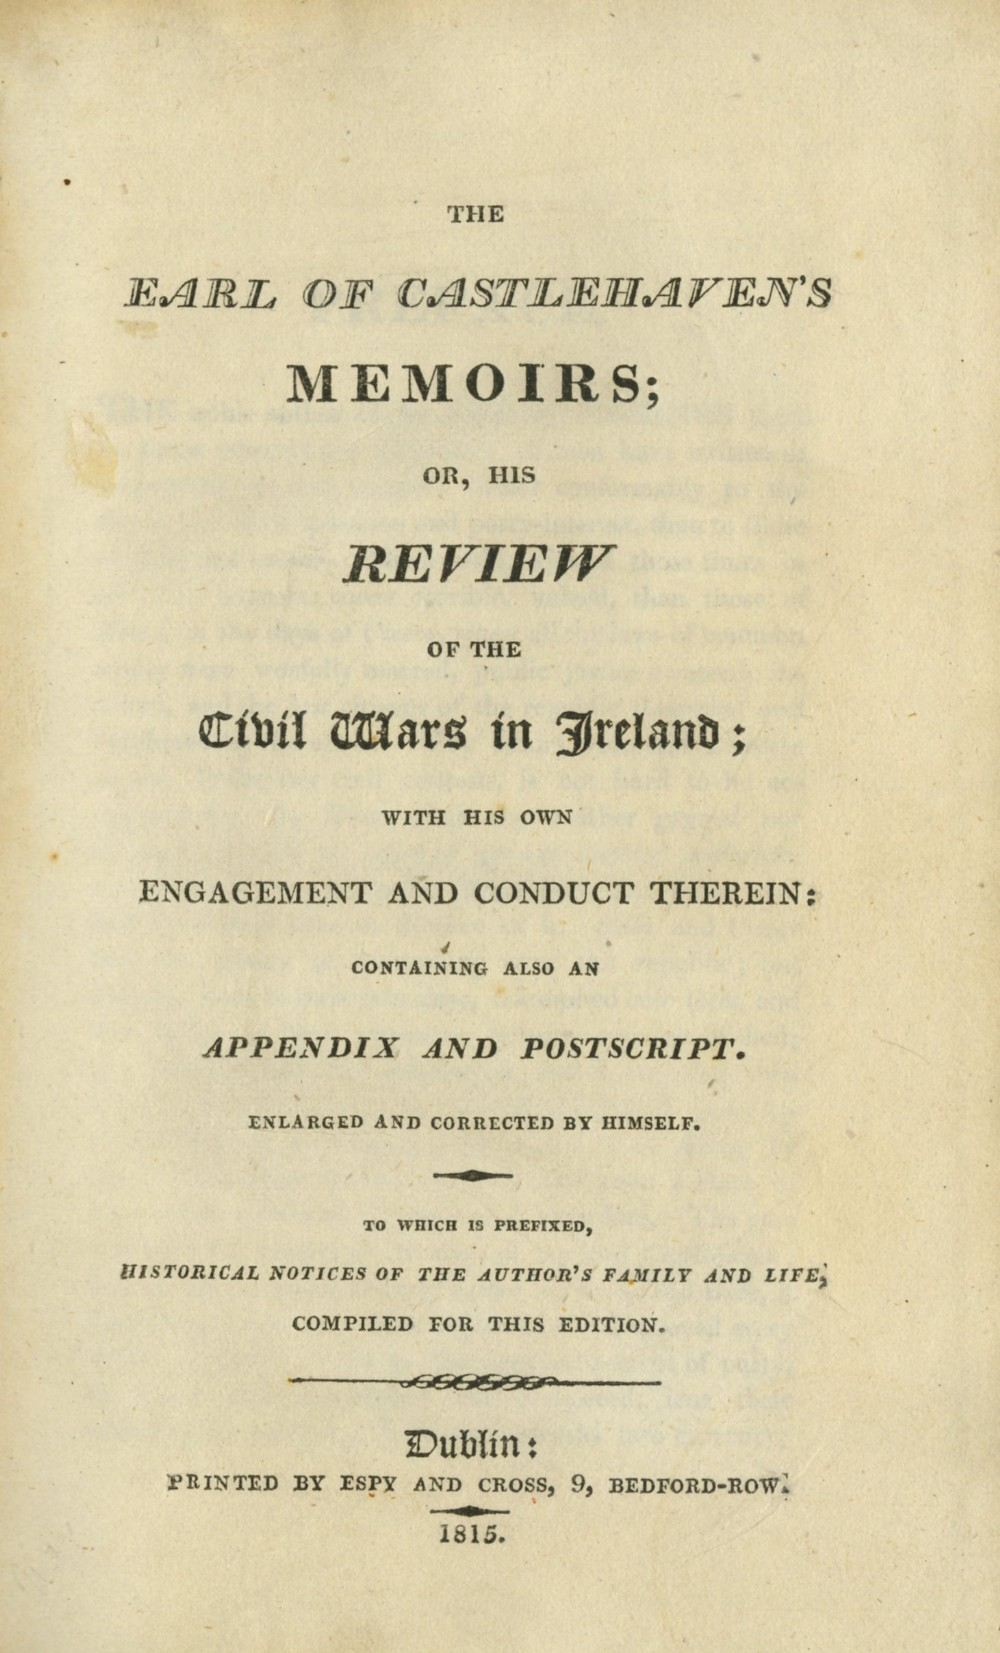 [Touchet (James)] The Earl of Castlehaven's Memoirs or, His Review of the Civil Wars in Ireland;... - Image 2 of 2